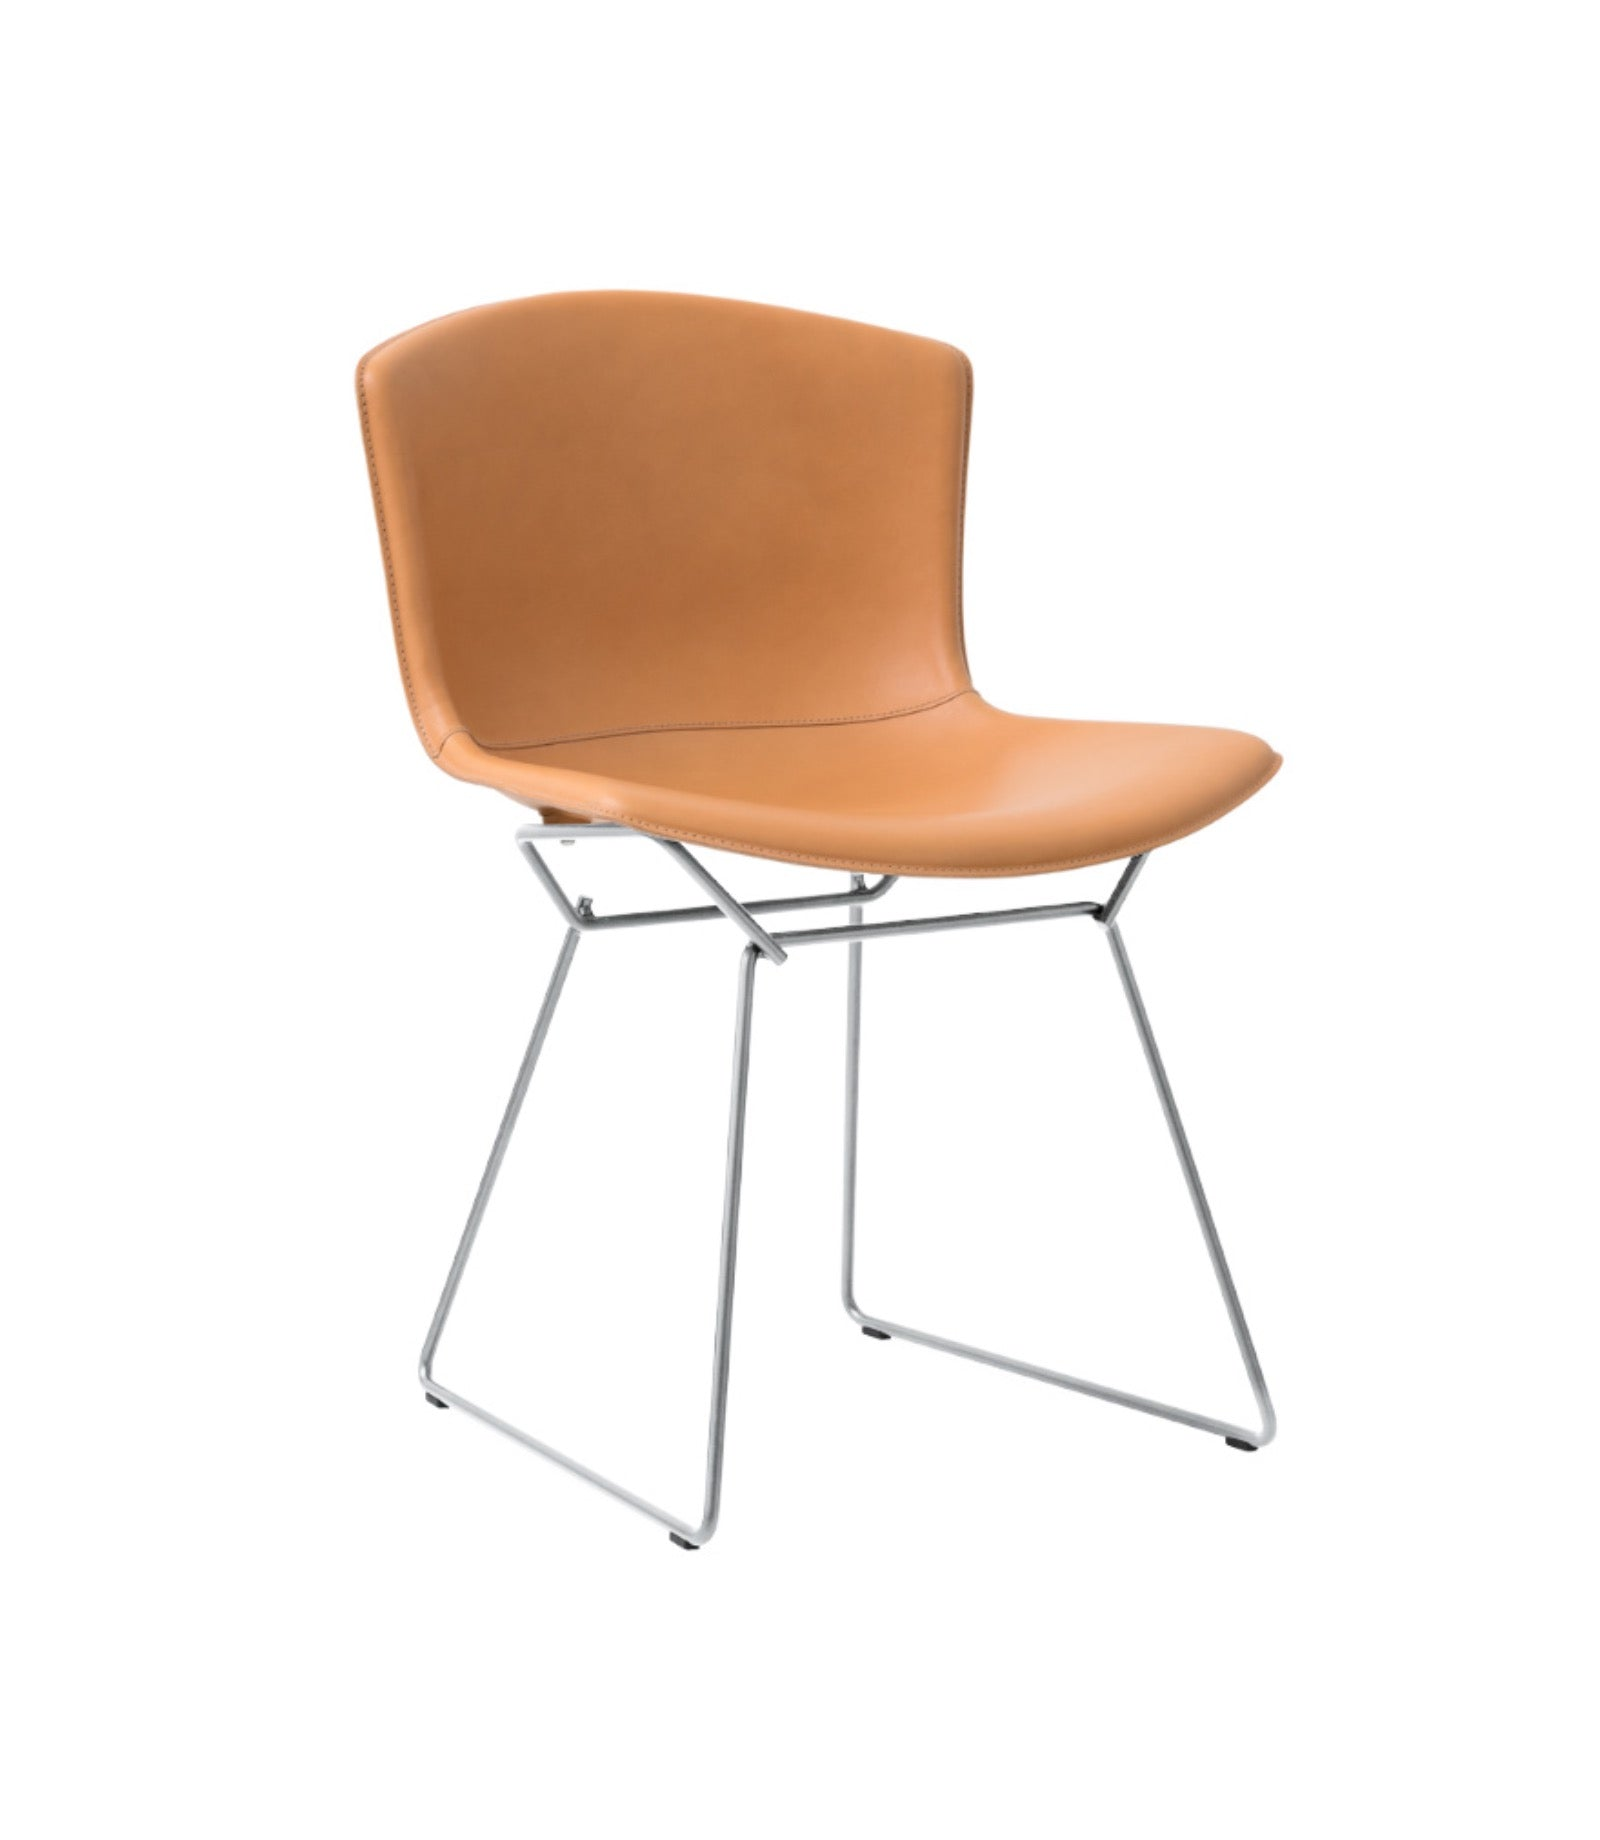 Bertoia Side Chair in Cowhide